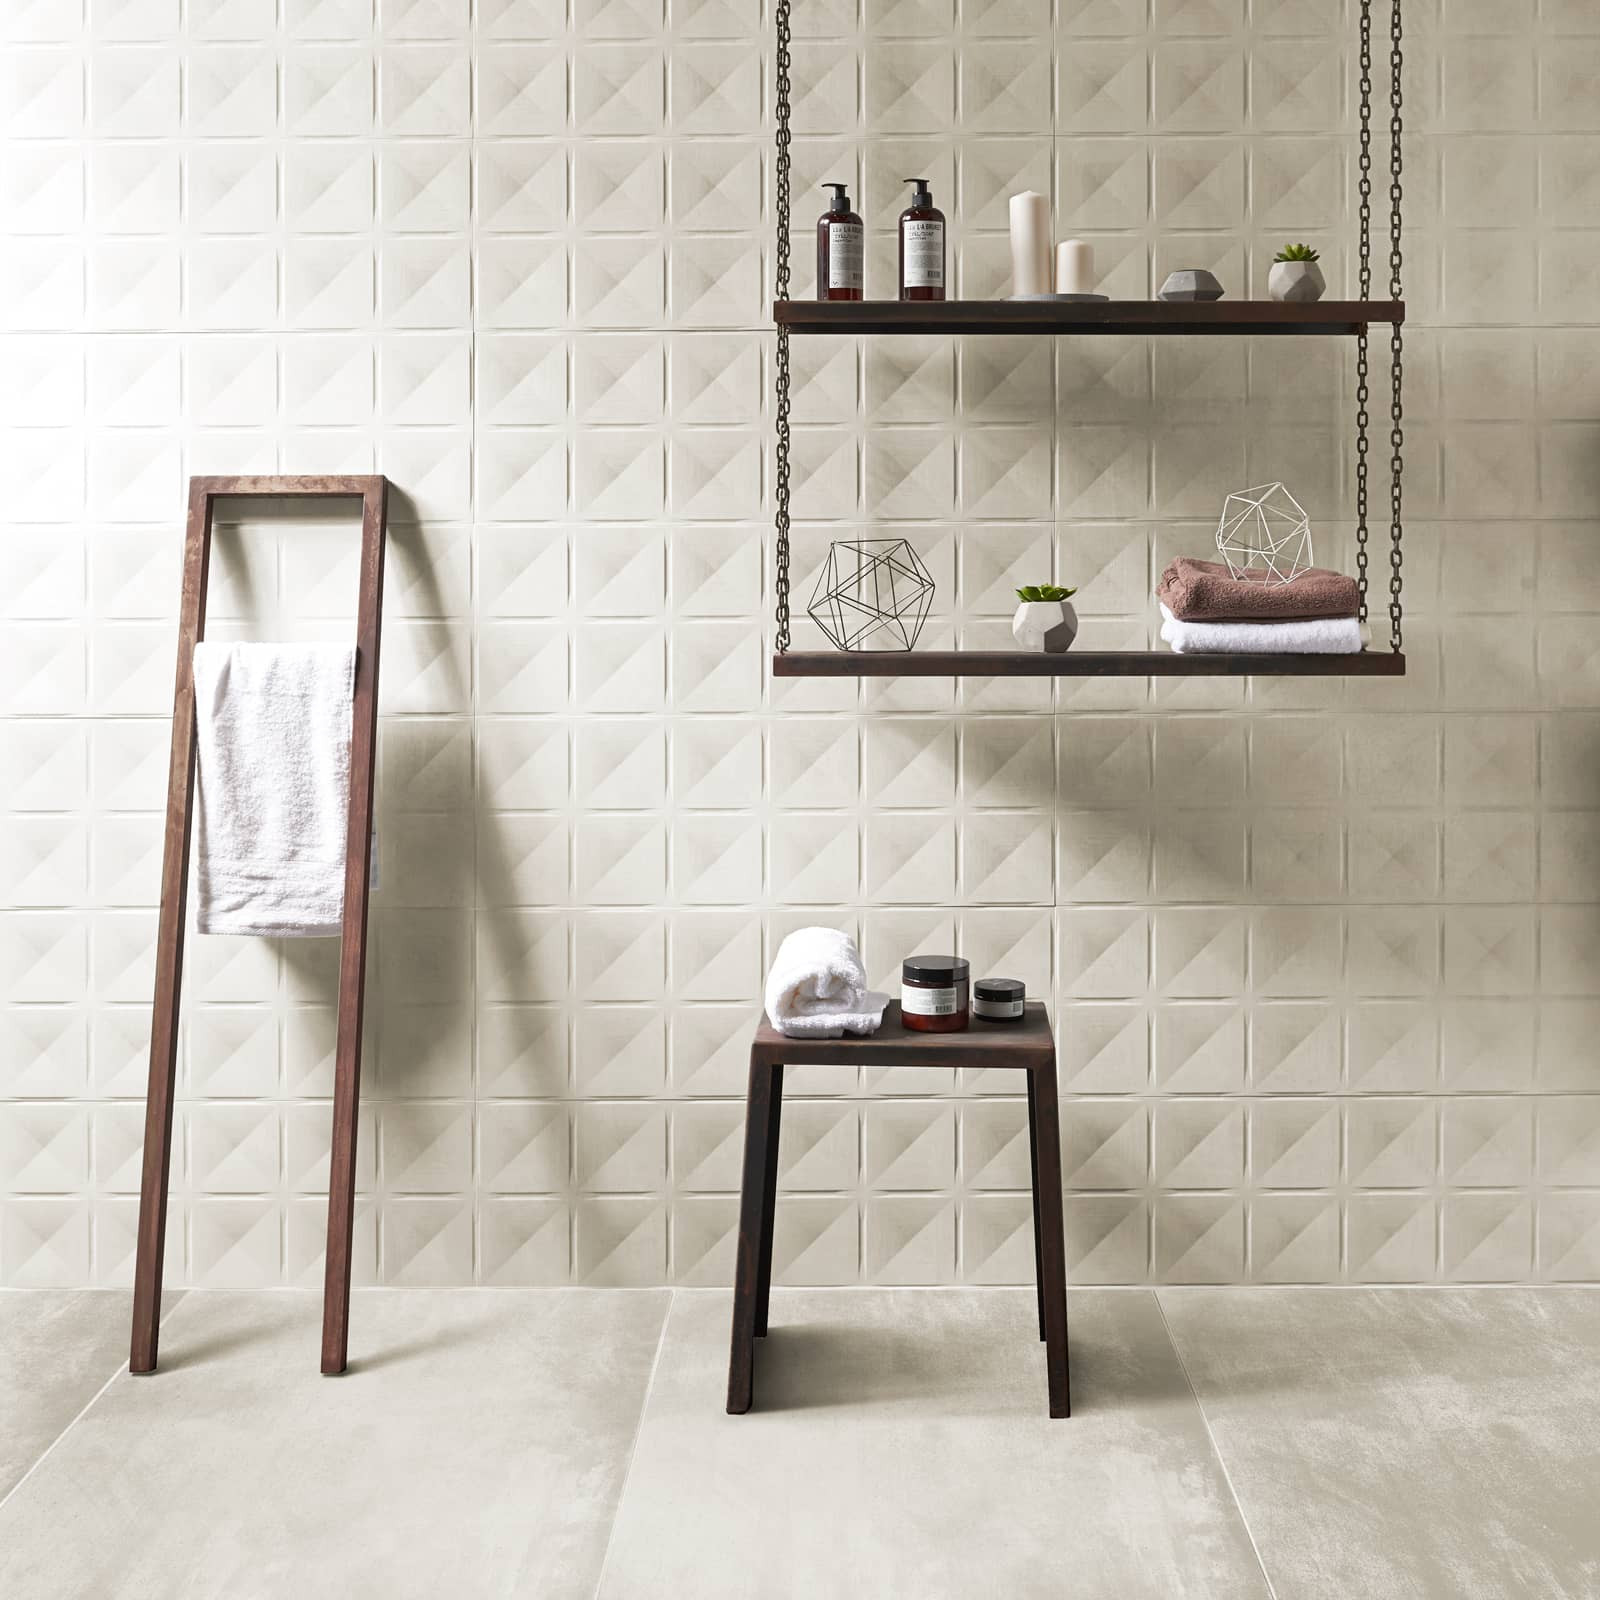 Leeds concept beige dcor wall tile dailygadgetfo Image collections